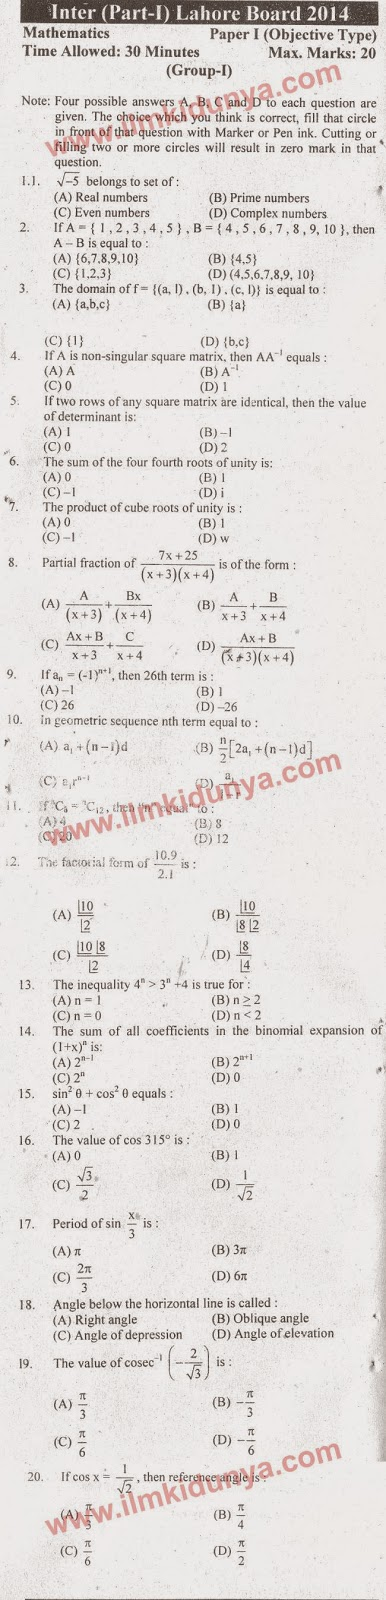 Past Papers 2014 Lahore Board Inter Part 1 Mathematics Objective Group 1